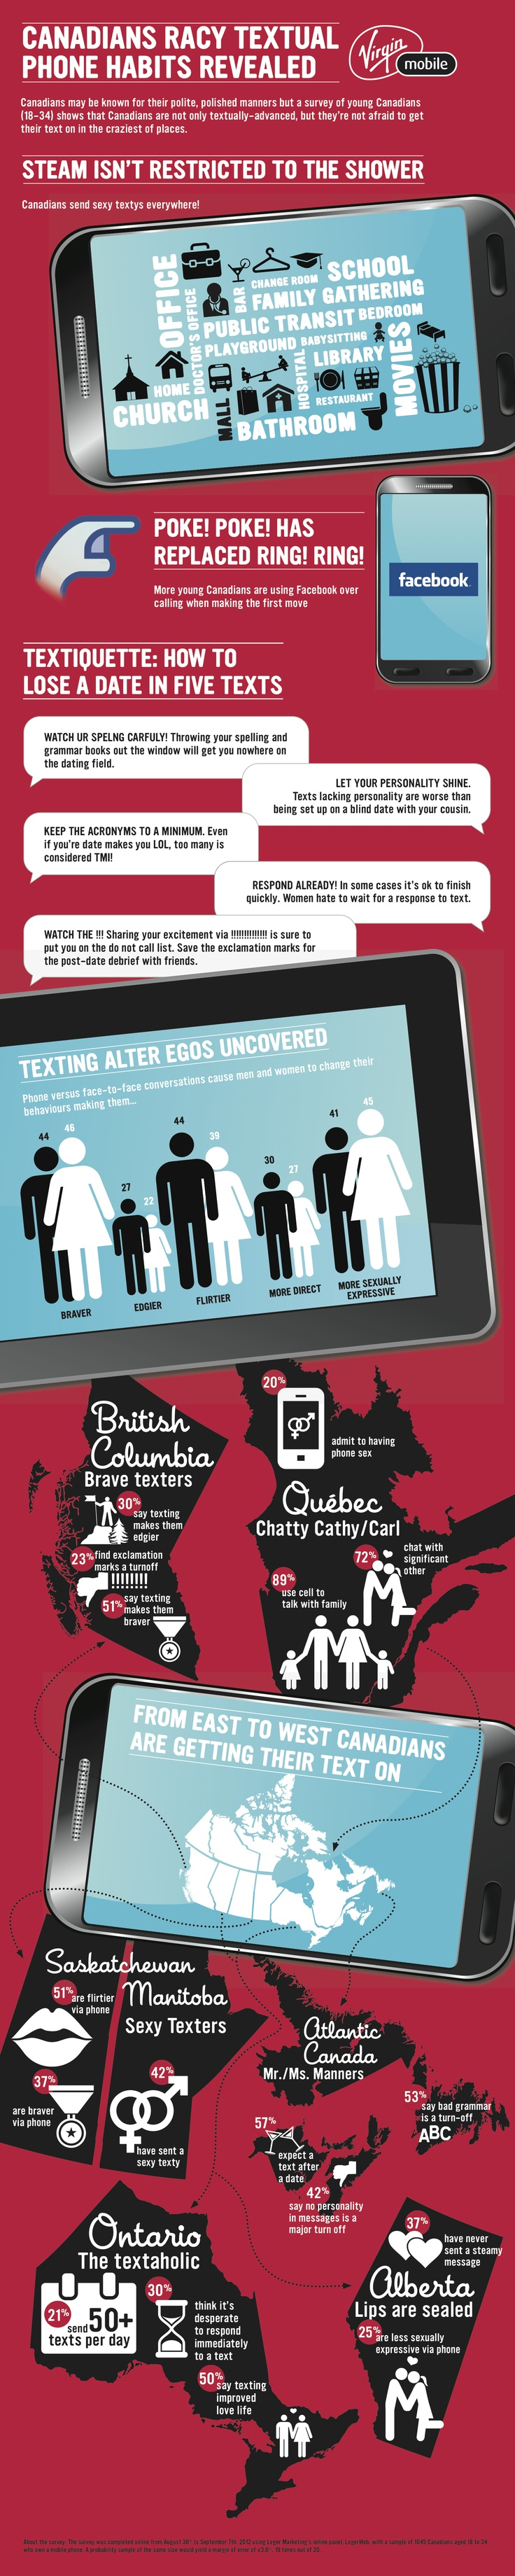 How do Canadians like their text? Canadian textual phone habits revealed.